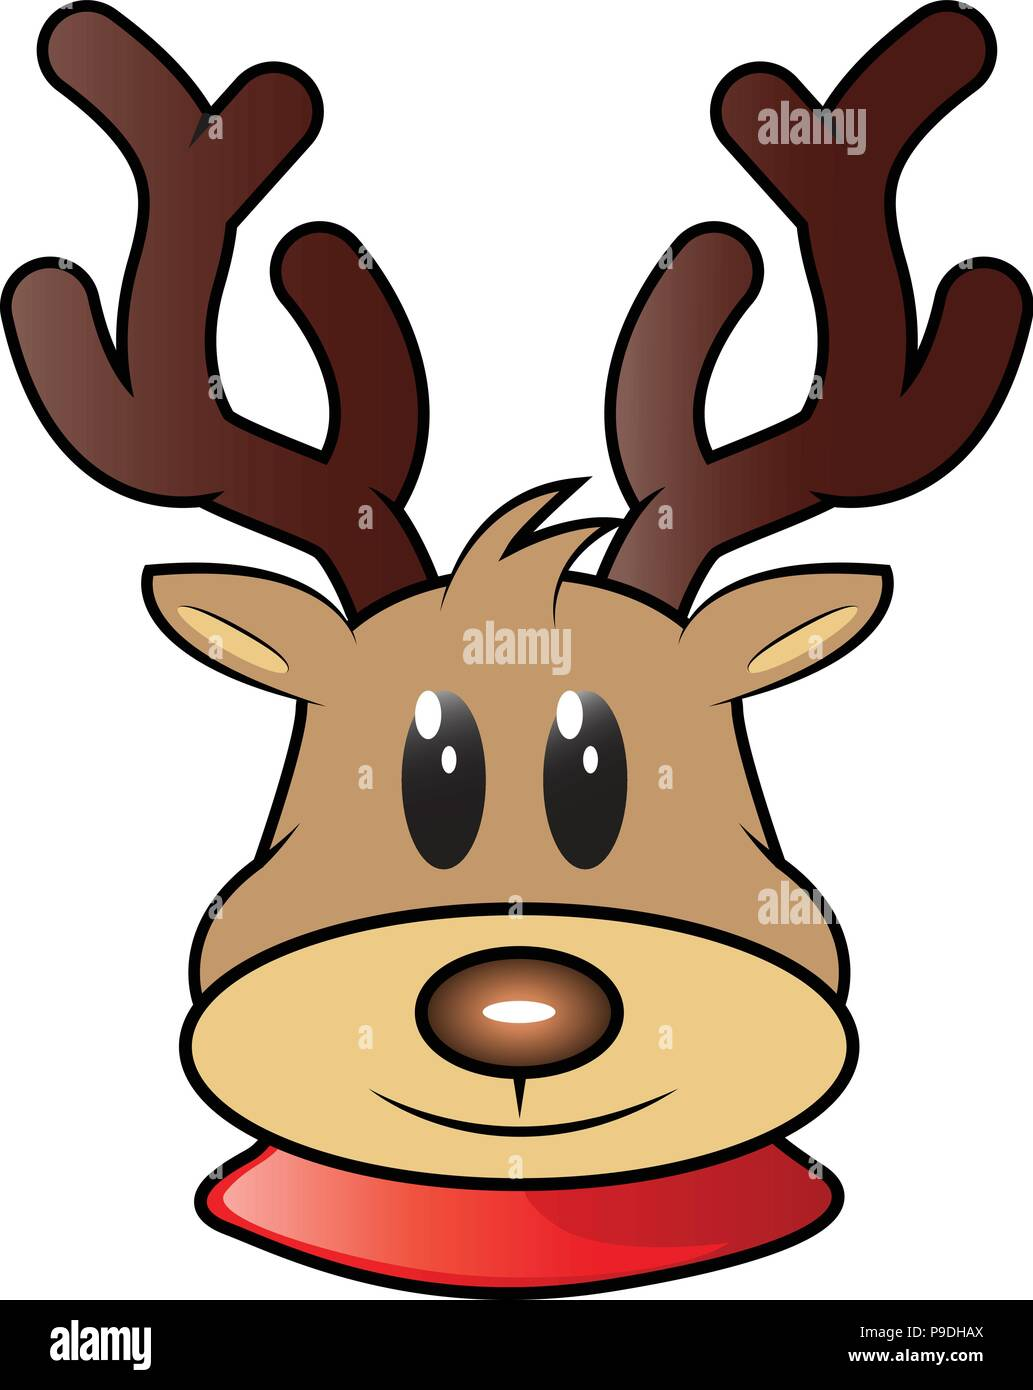 cartoon vector illustration of Rudolph the Red Nose ...